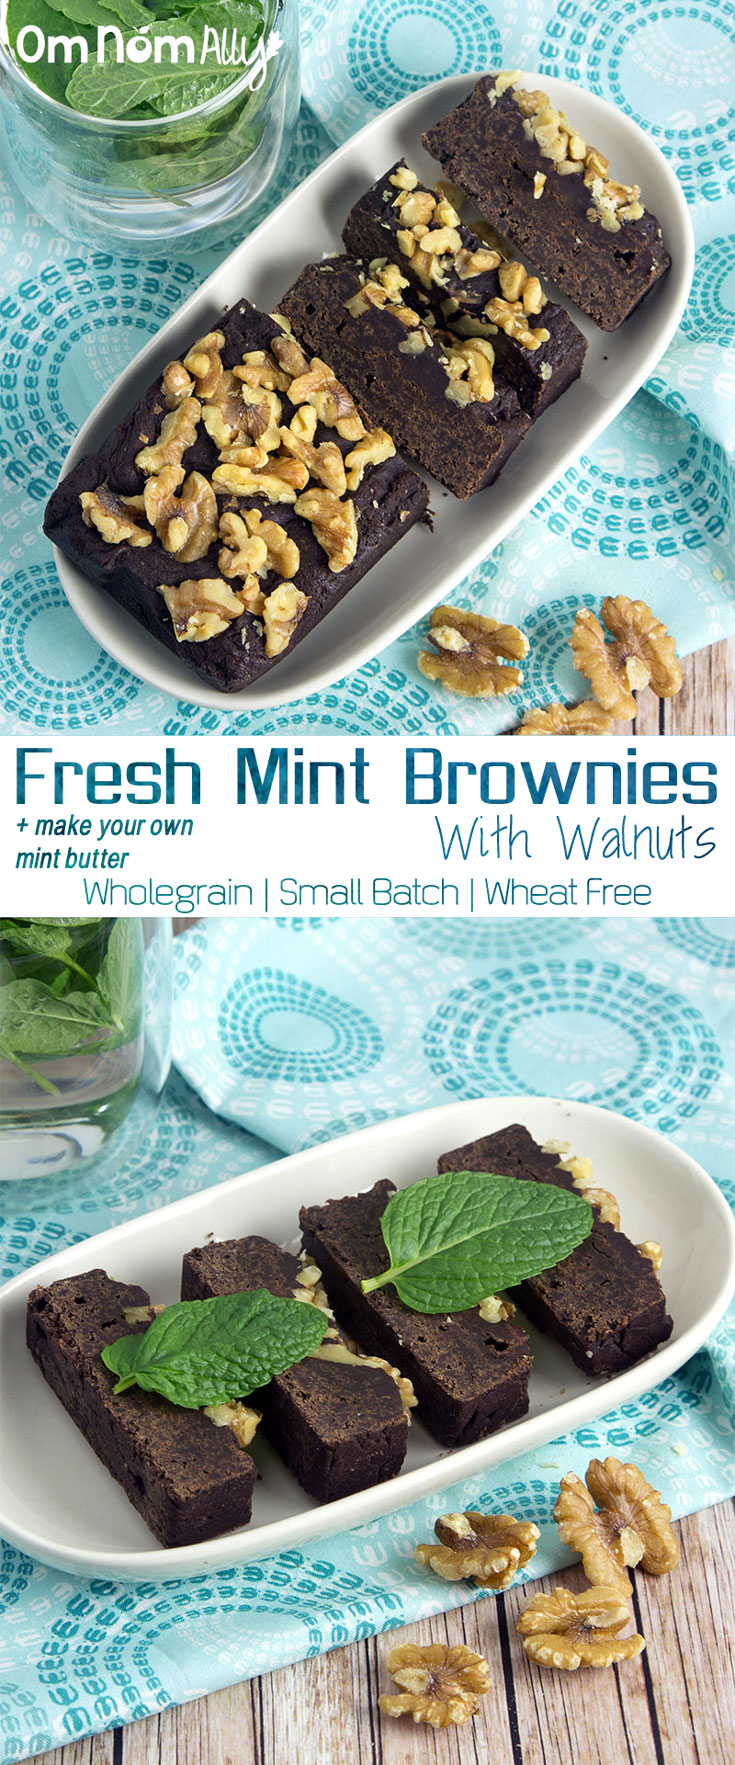 Fresh Mint Cacao Brownies with Walnuts @OmNomAlly